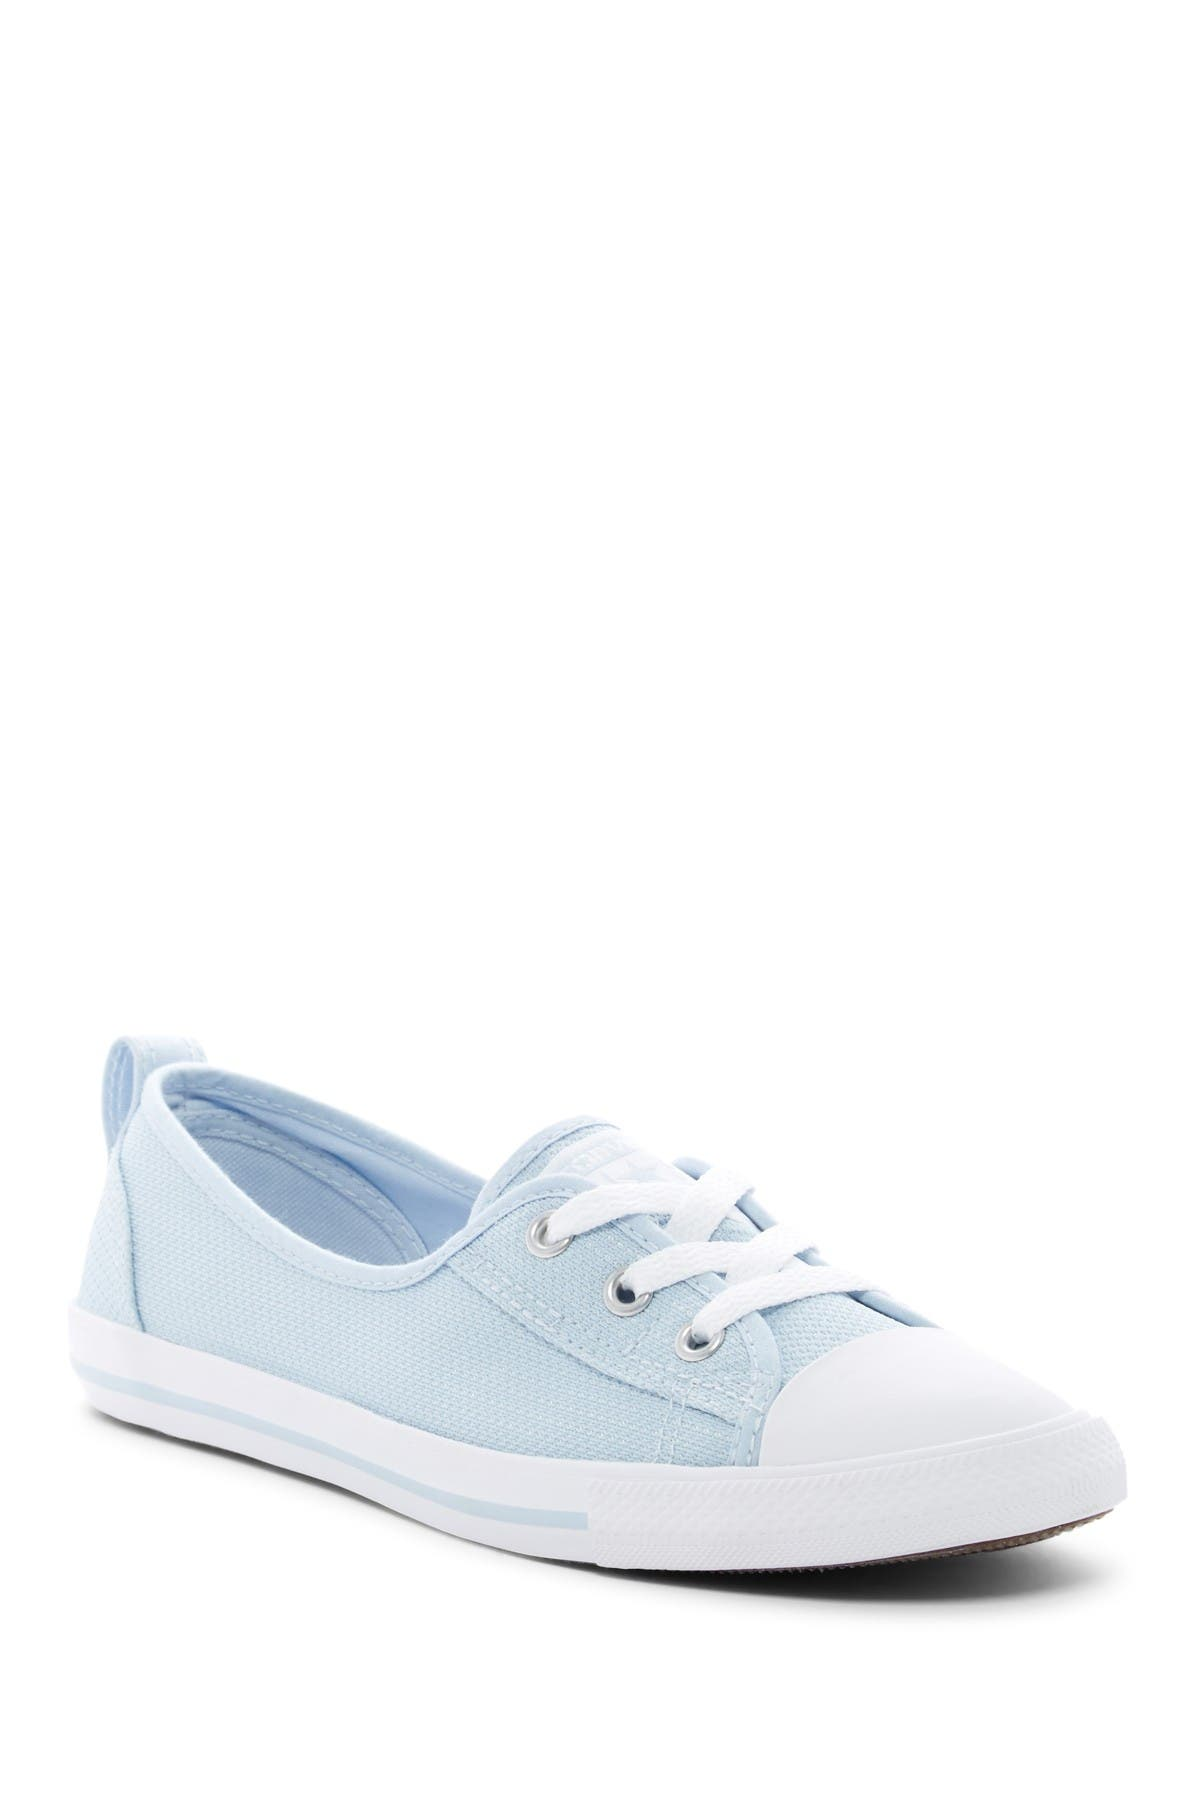 Image of Converse Chuck Taylor All Star Ballet Slip-On Sneakers